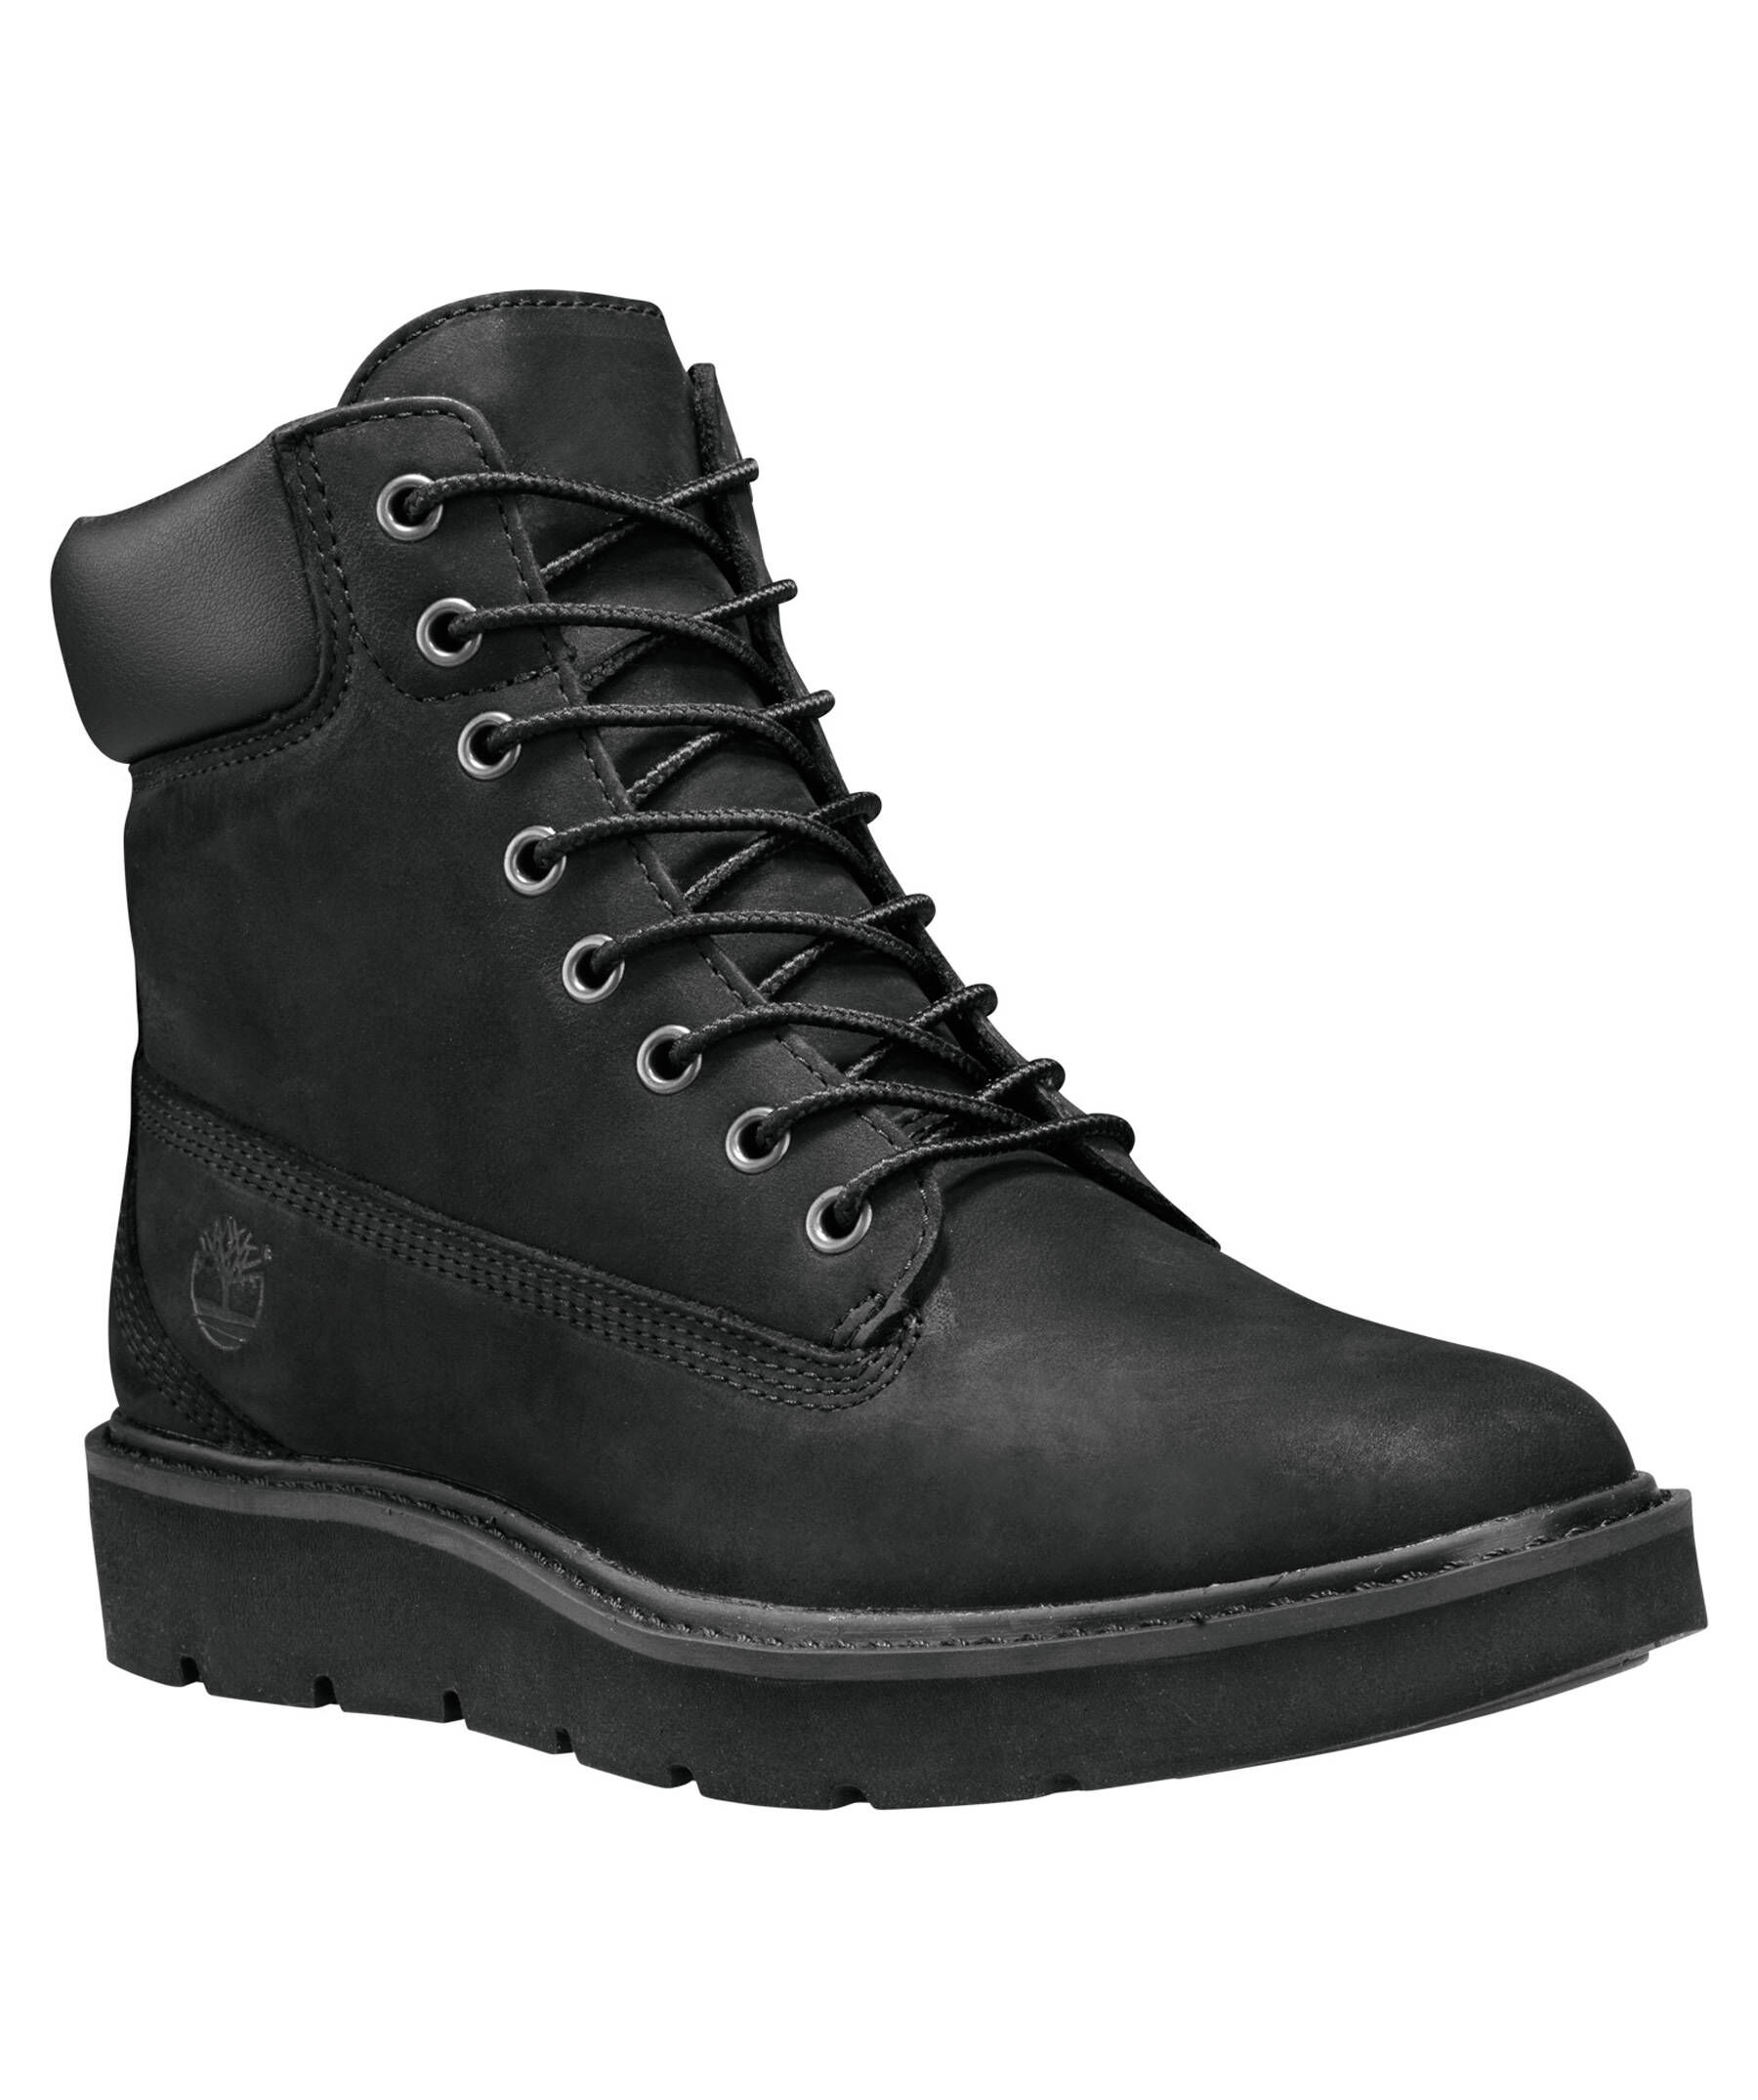 timberland damen stiefel kenniston 6 inch lace up black schwarz ebay. Black Bedroom Furniture Sets. Home Design Ideas